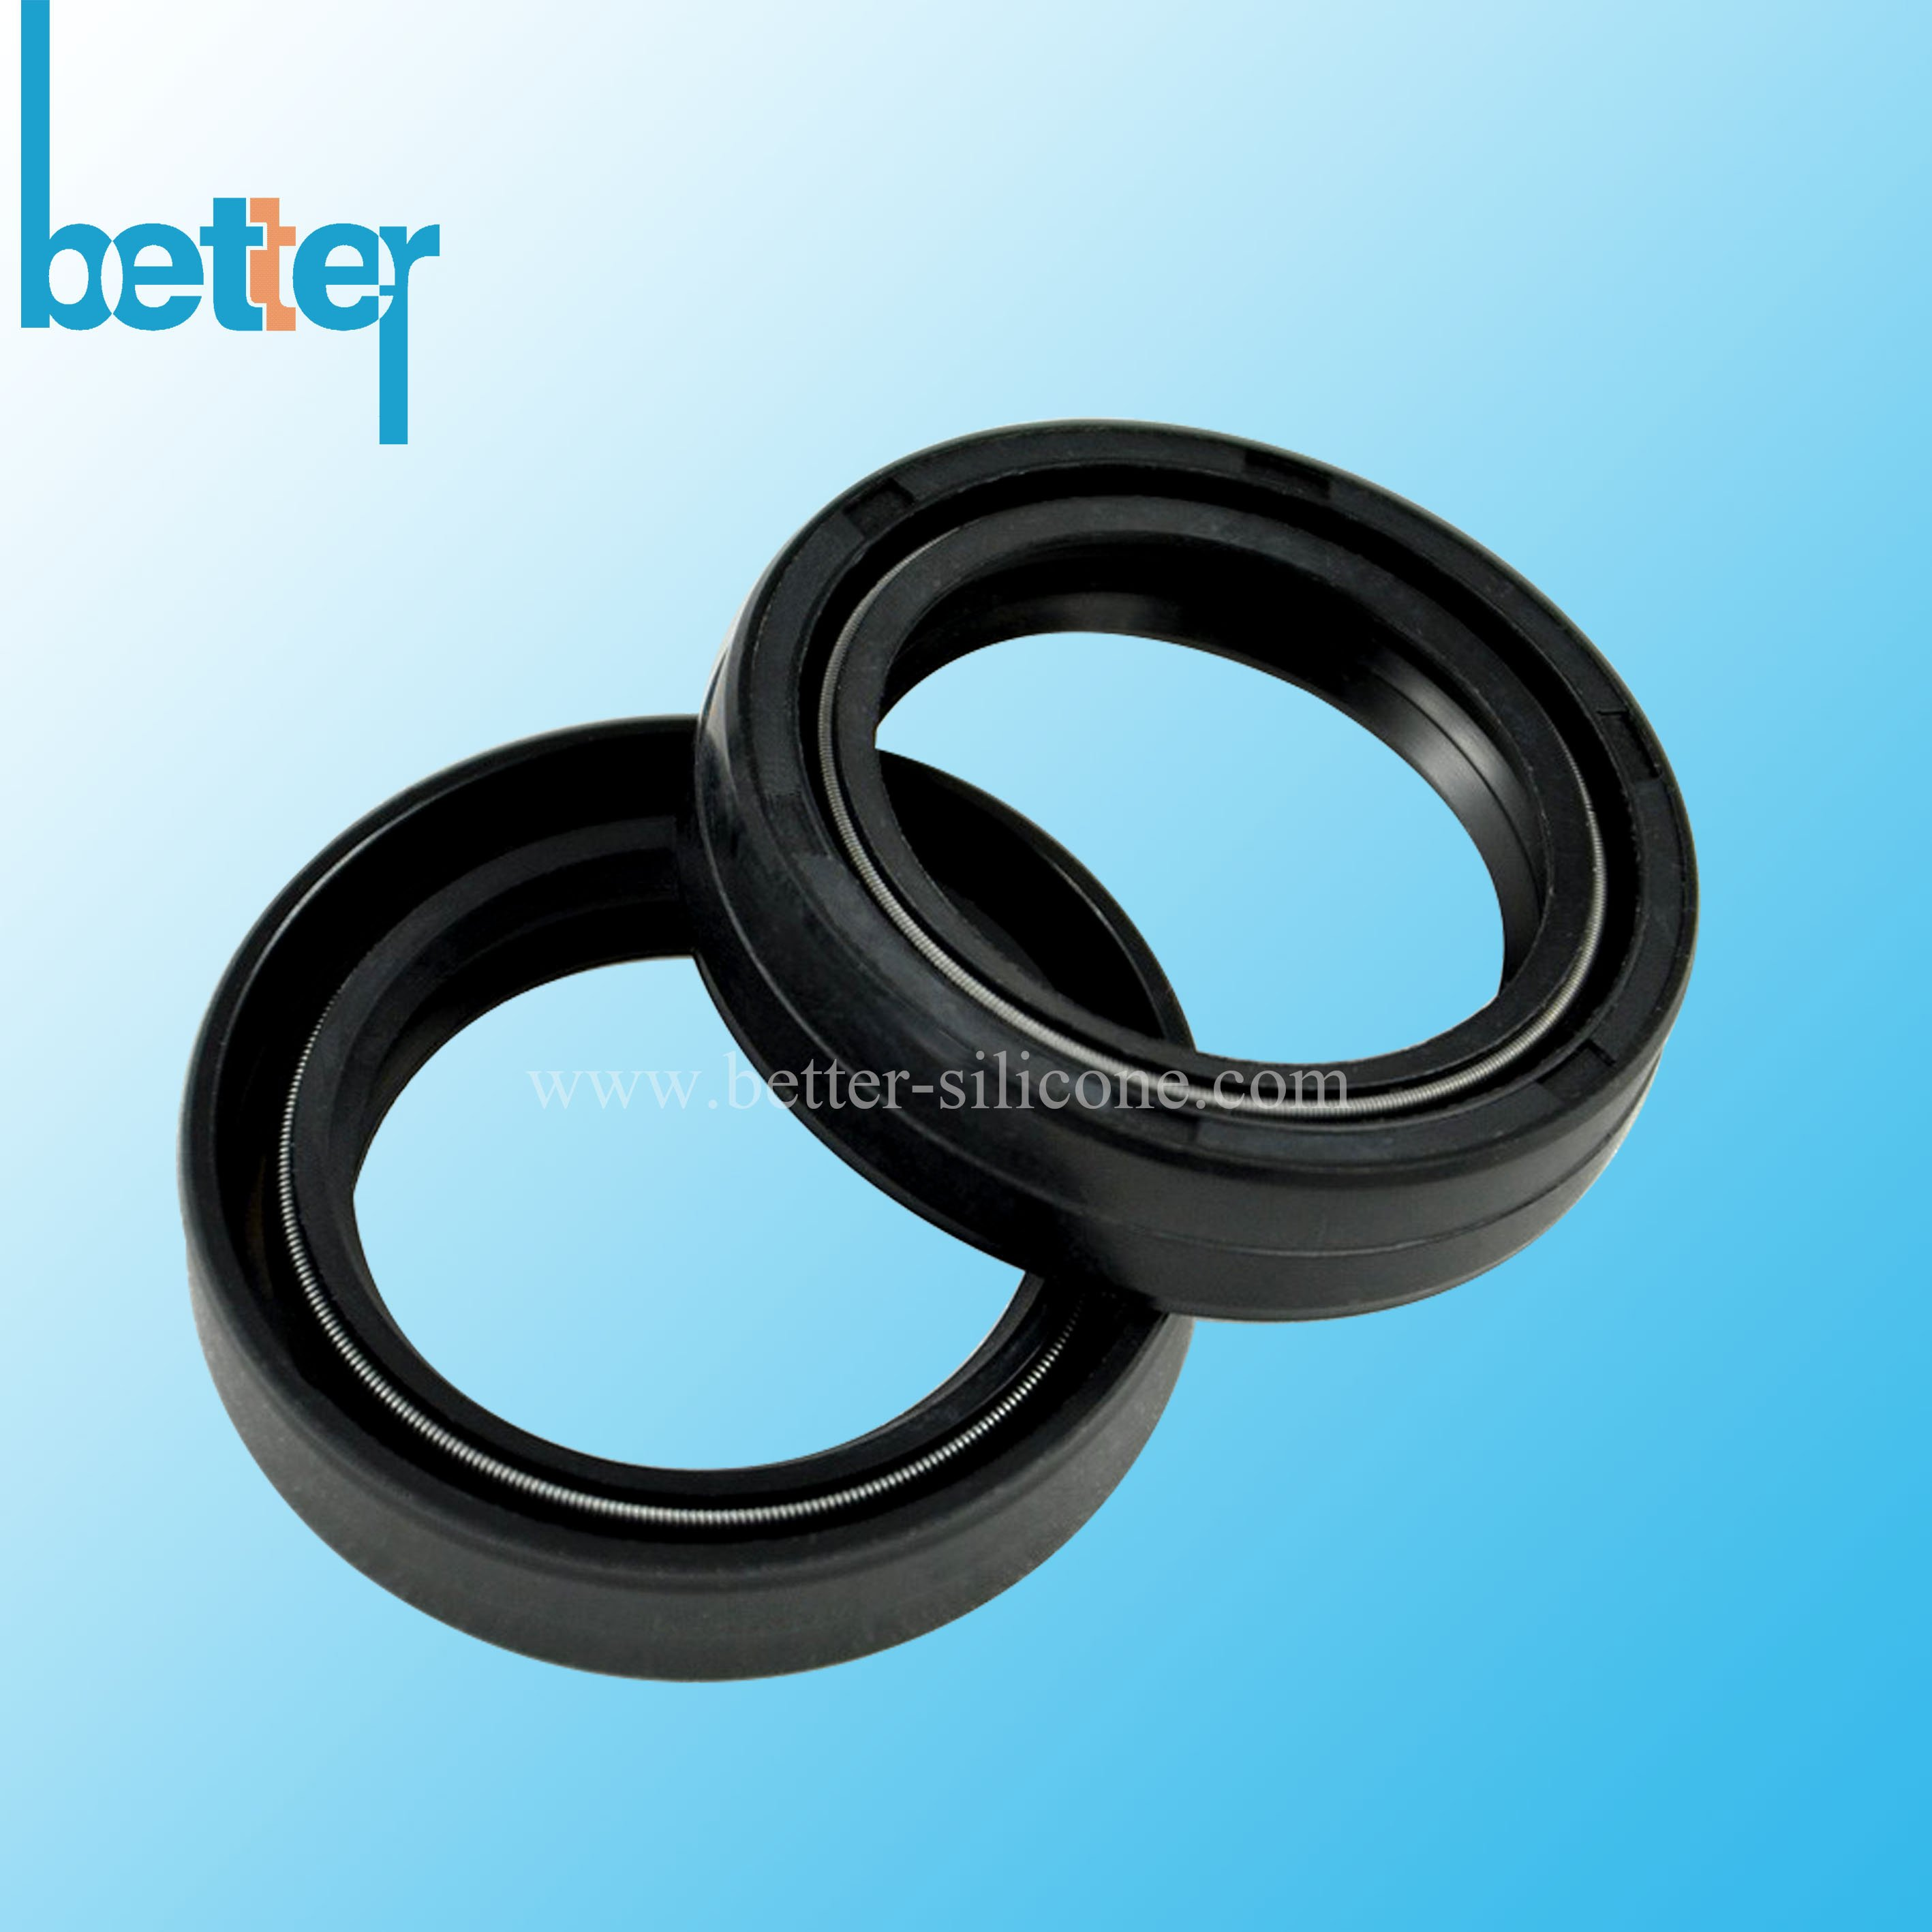 Buna N Gasket From China Manufacturer Better Silicone